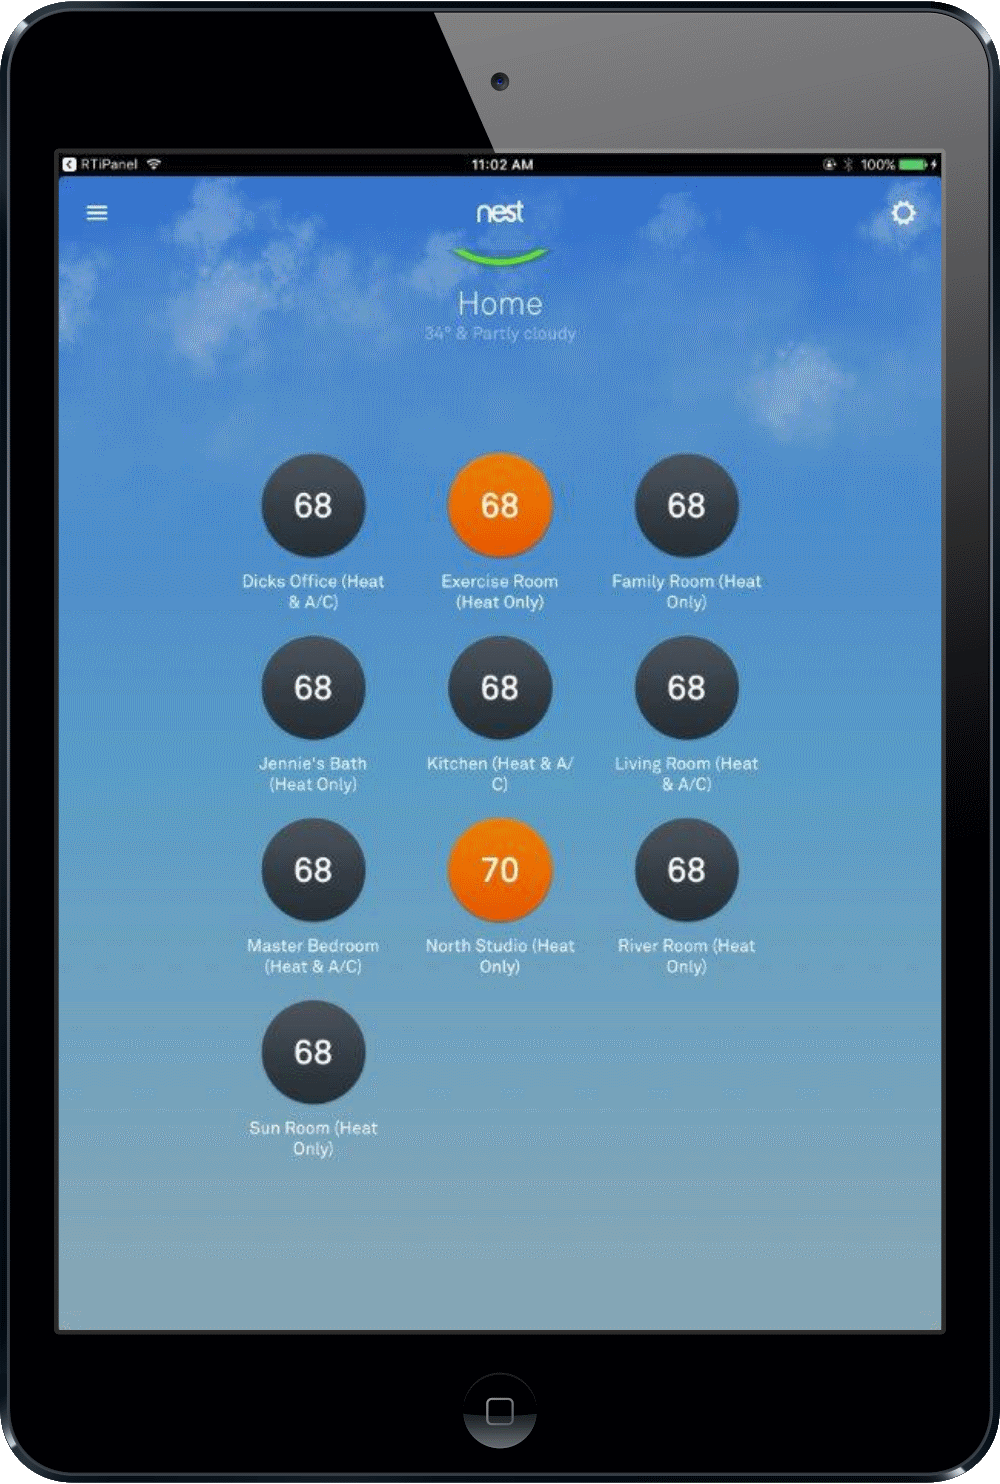 Ipad Mini Universal Remote for smart home - Nest Climate Control - Hudson Valley Home Media - Nyack, NY